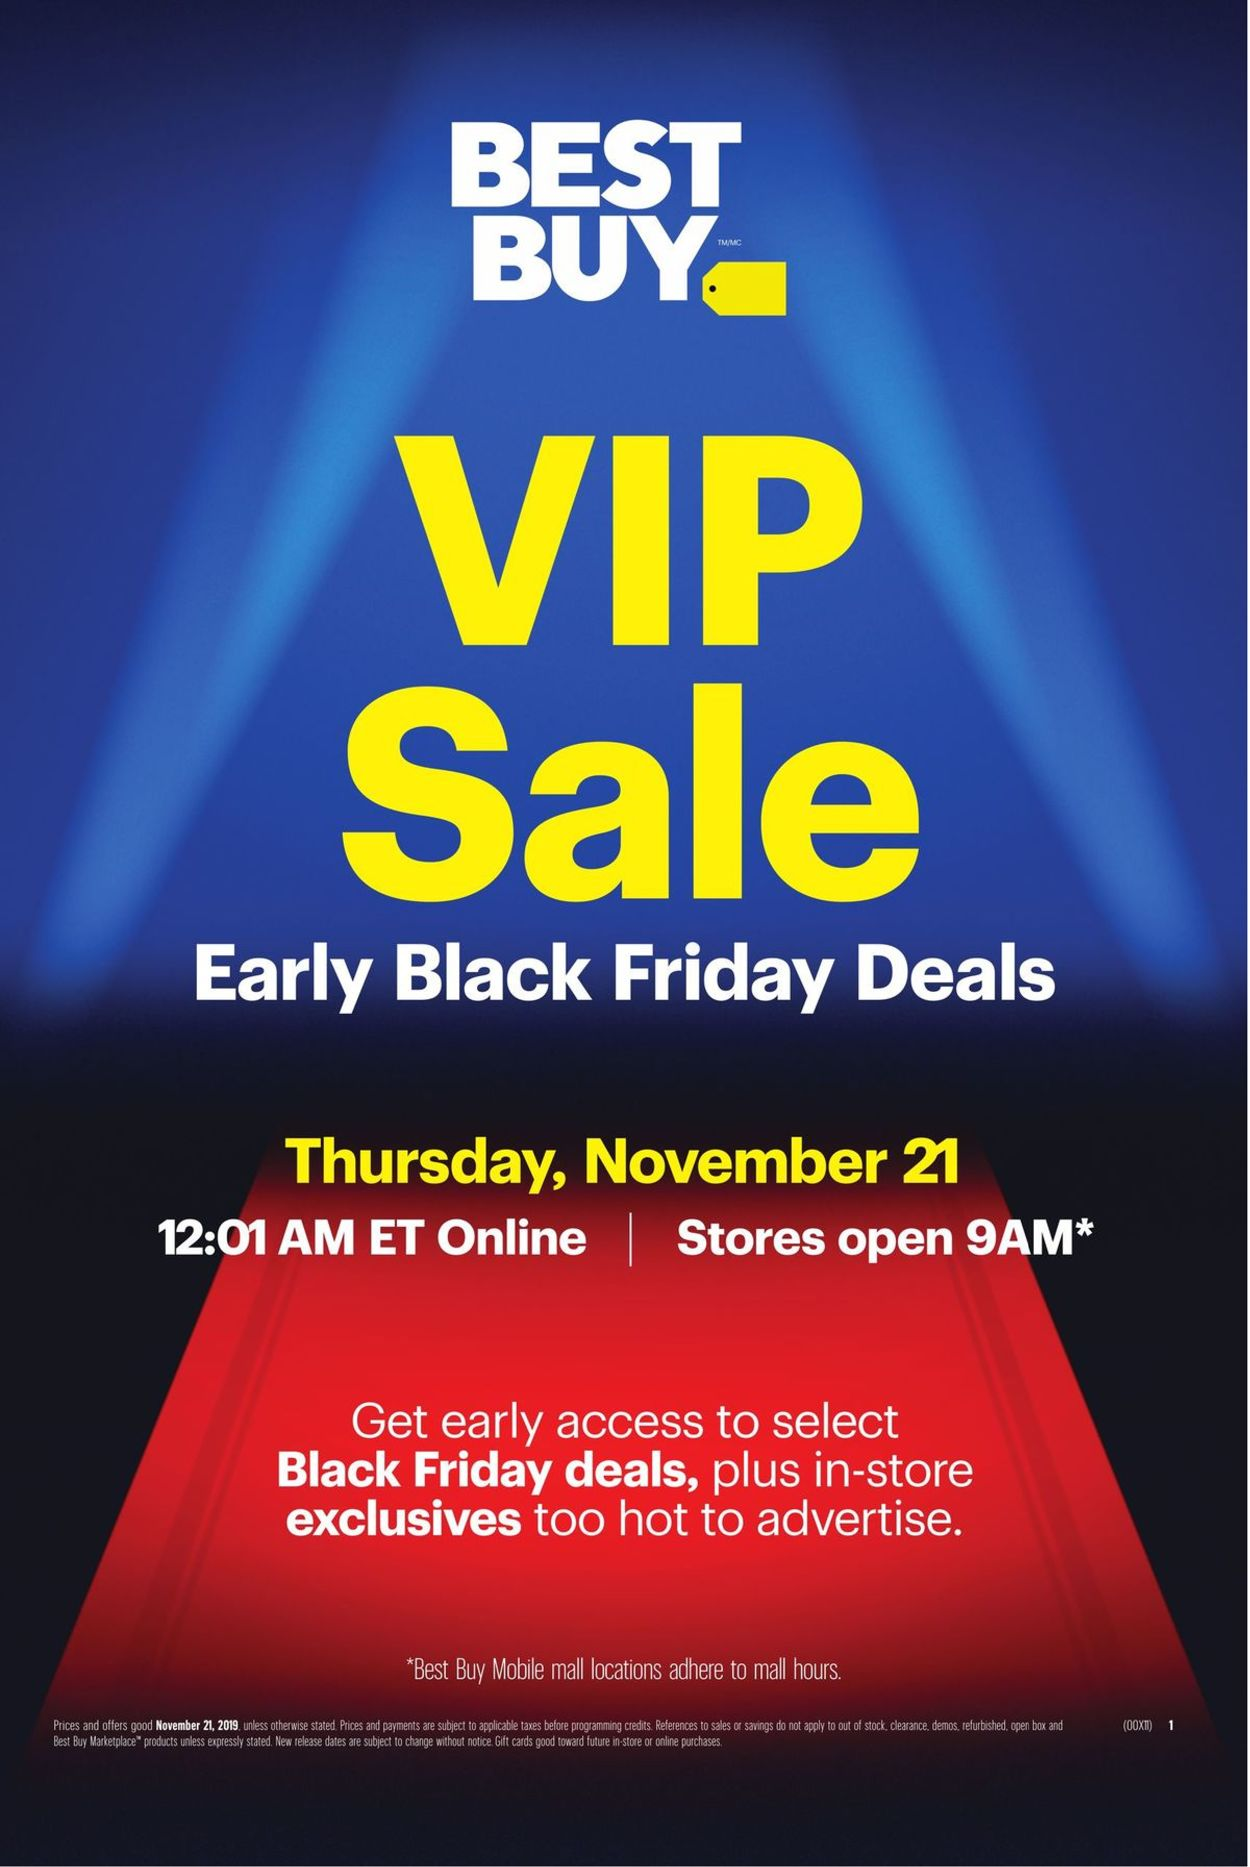 Best Buy - Early Black Friday Deals 2019 Flyer - 11/18-11/21/2019